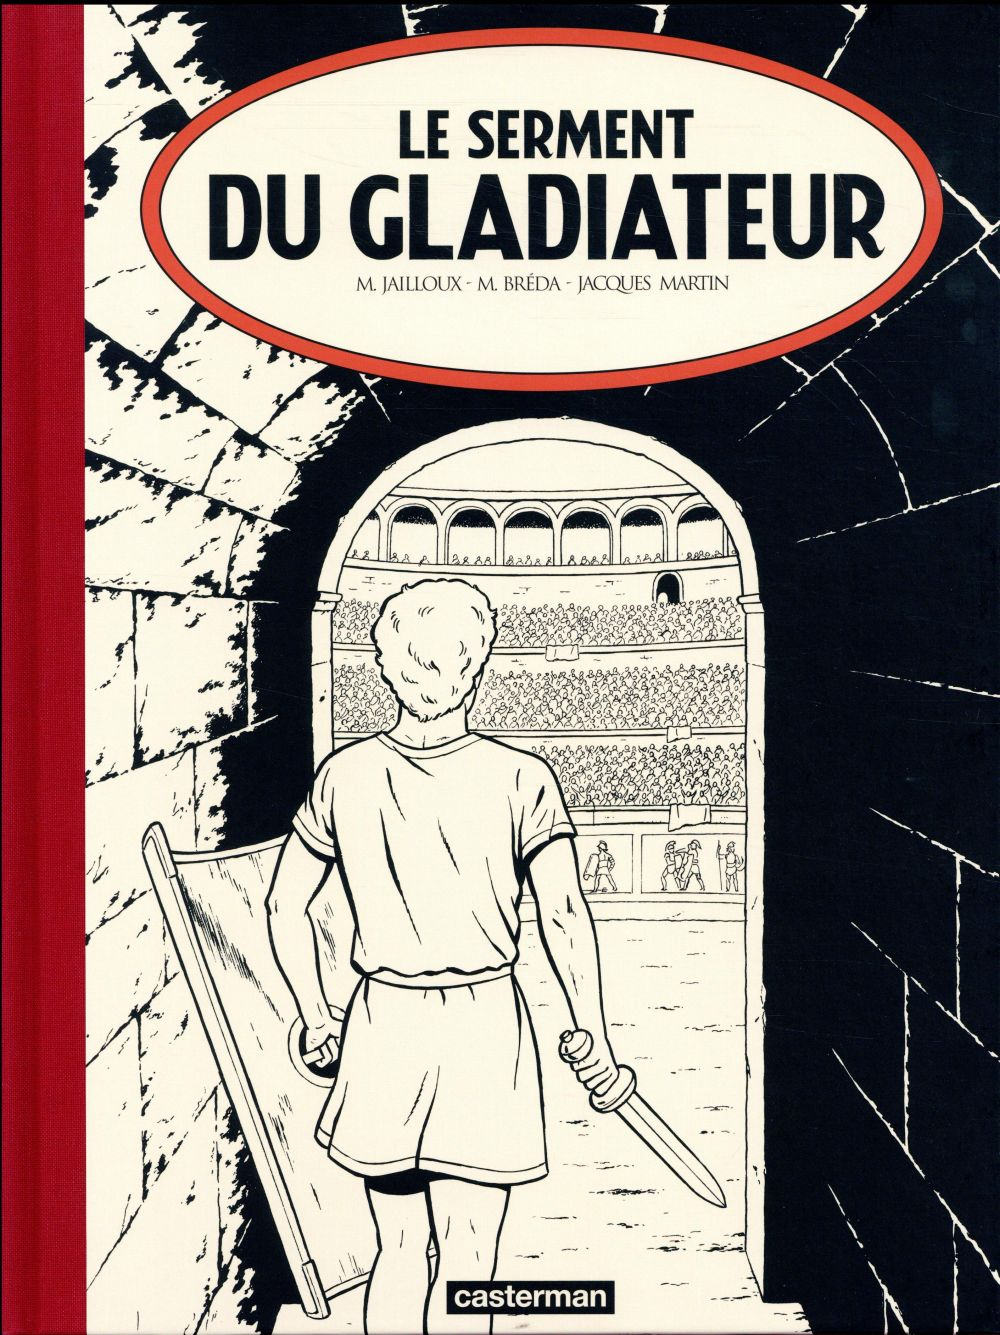 LE SERMENT DU GLADIATEUR - ALIX - EDITION N&B - T36